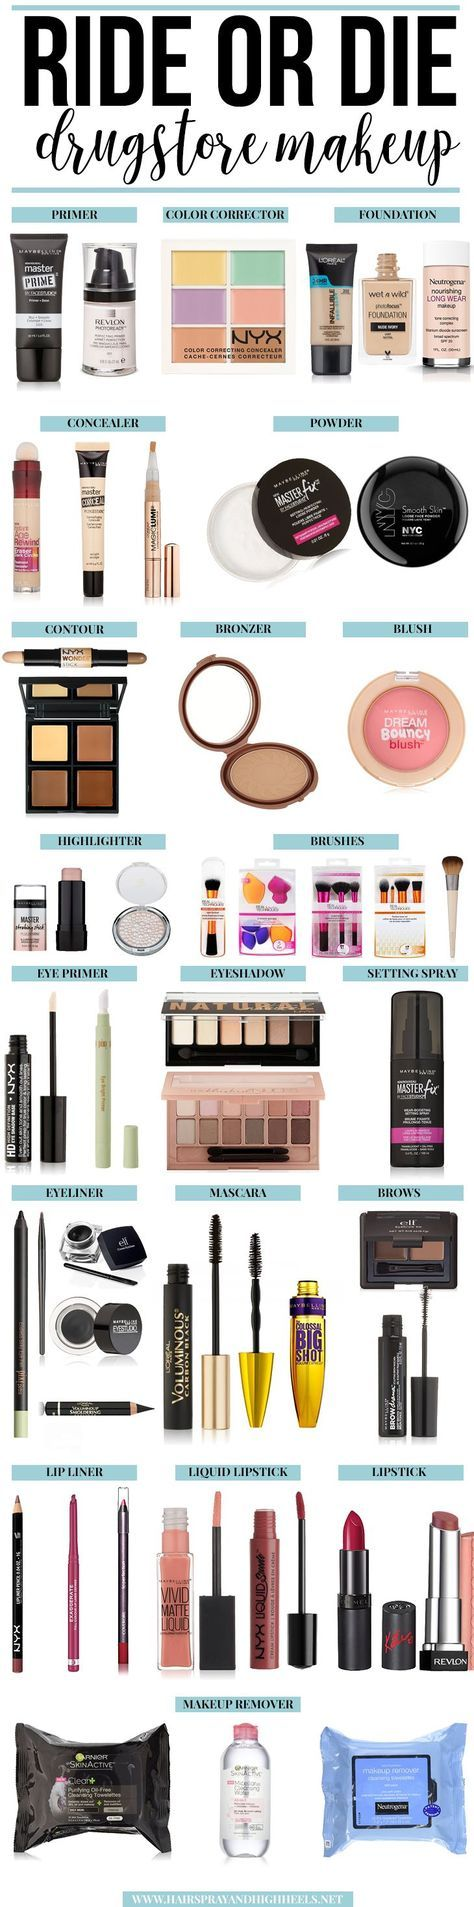 Are you in need of an updated makeup routine? Check out the Ride or Die Makeup products this blogger loves! Get started on your way to a new drugstore makeup kit.